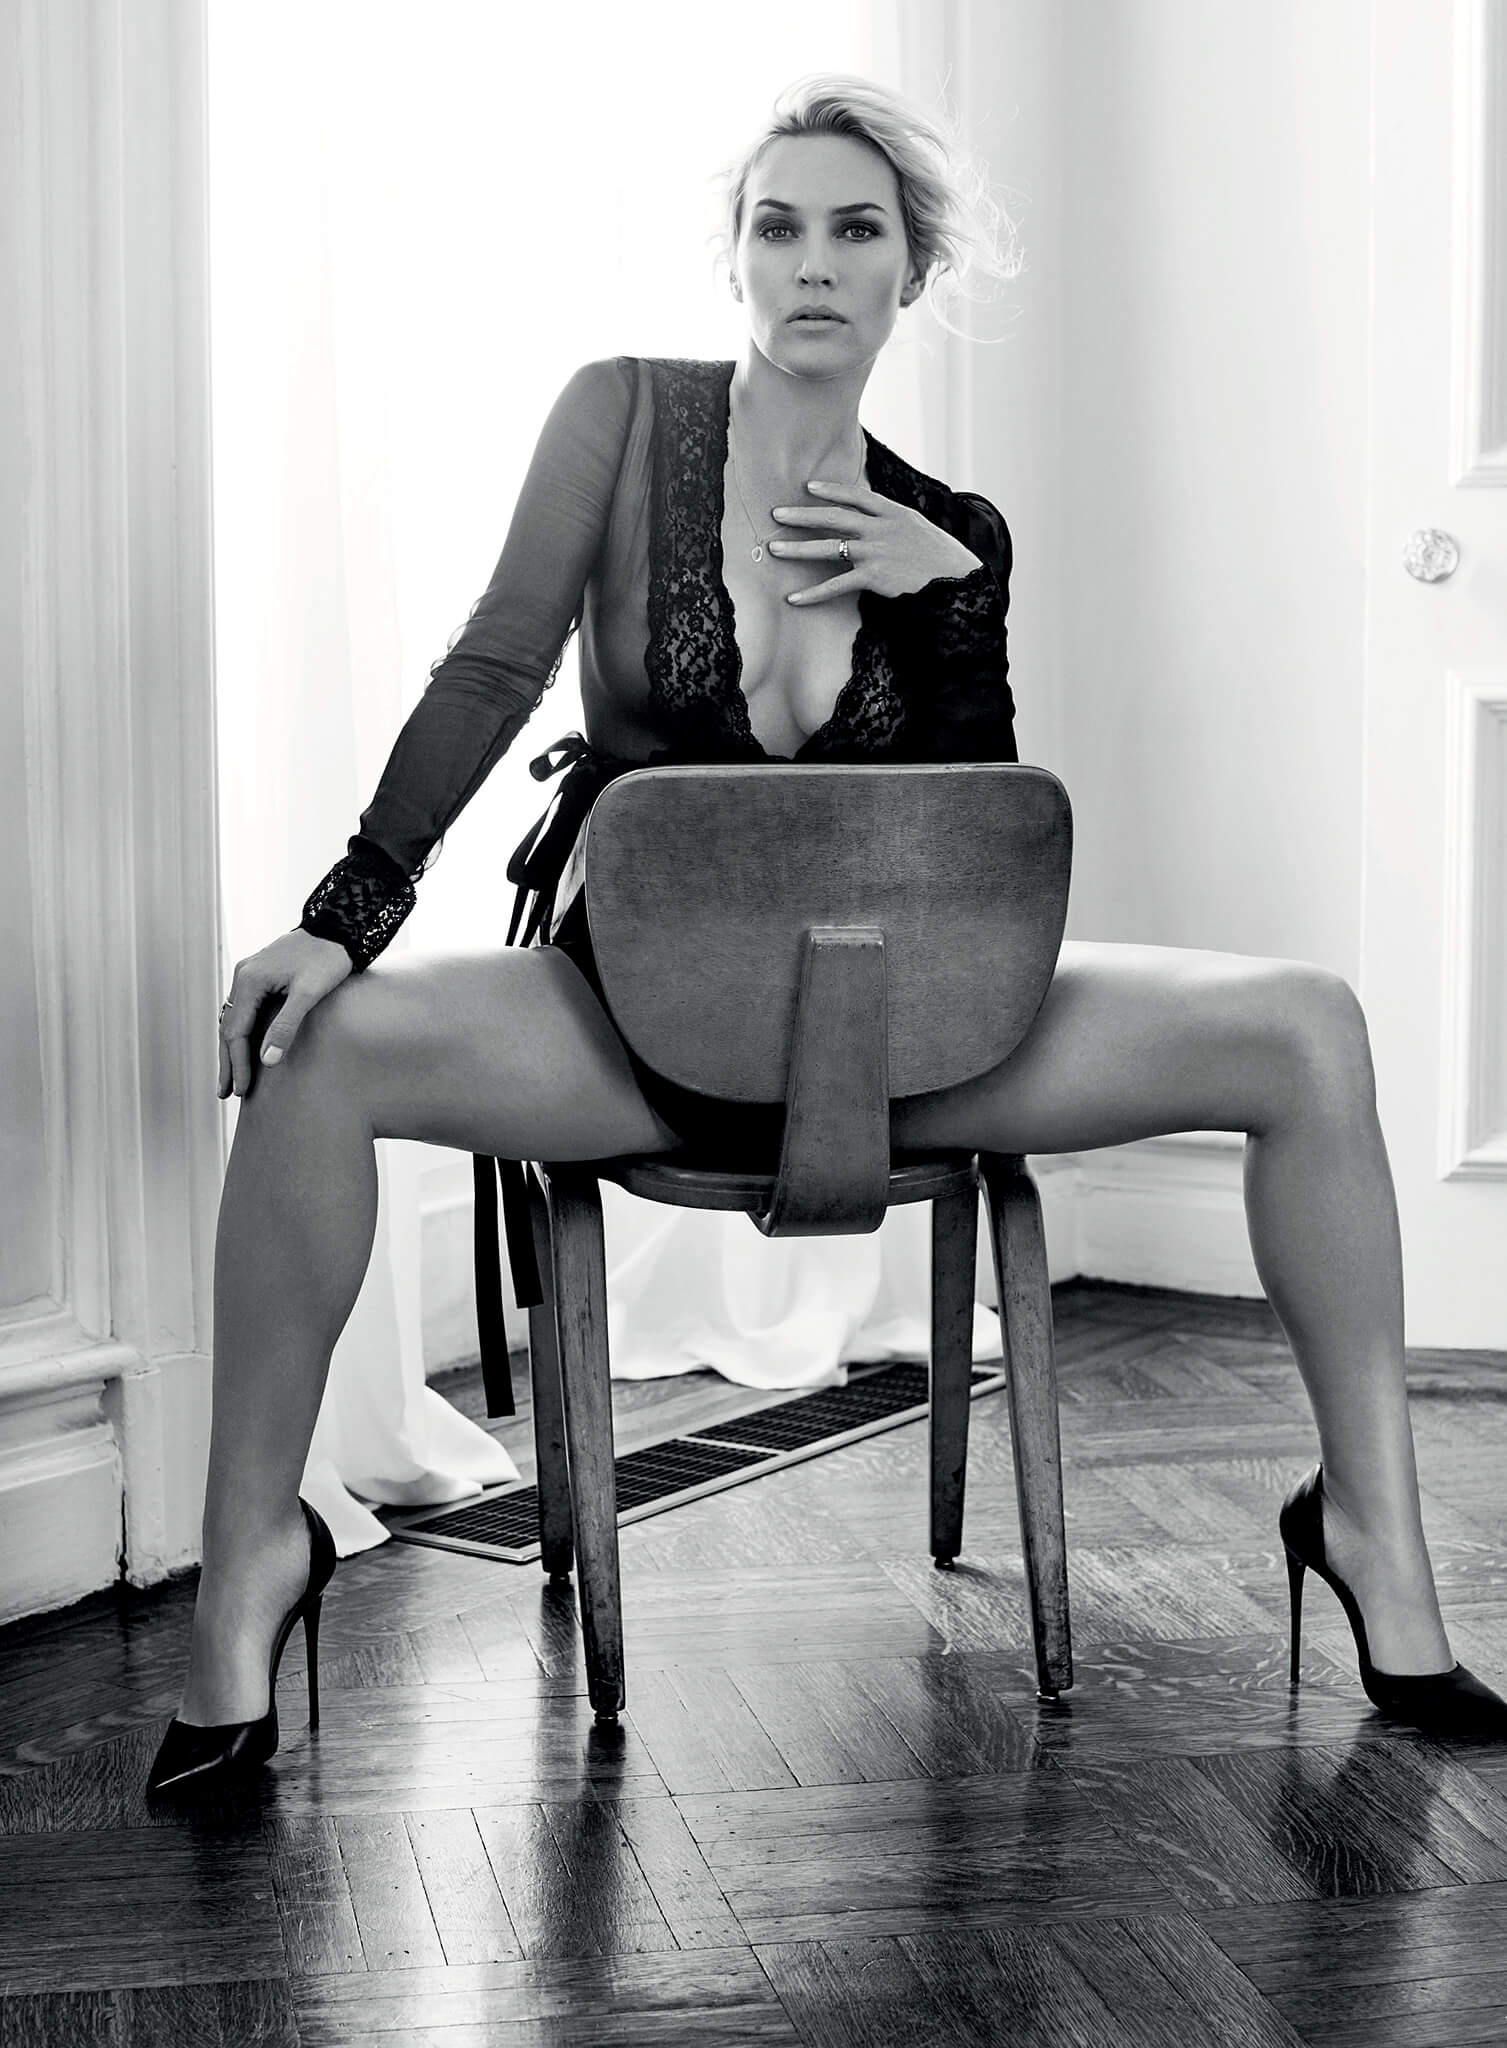 Kate-Winslet legs sexy